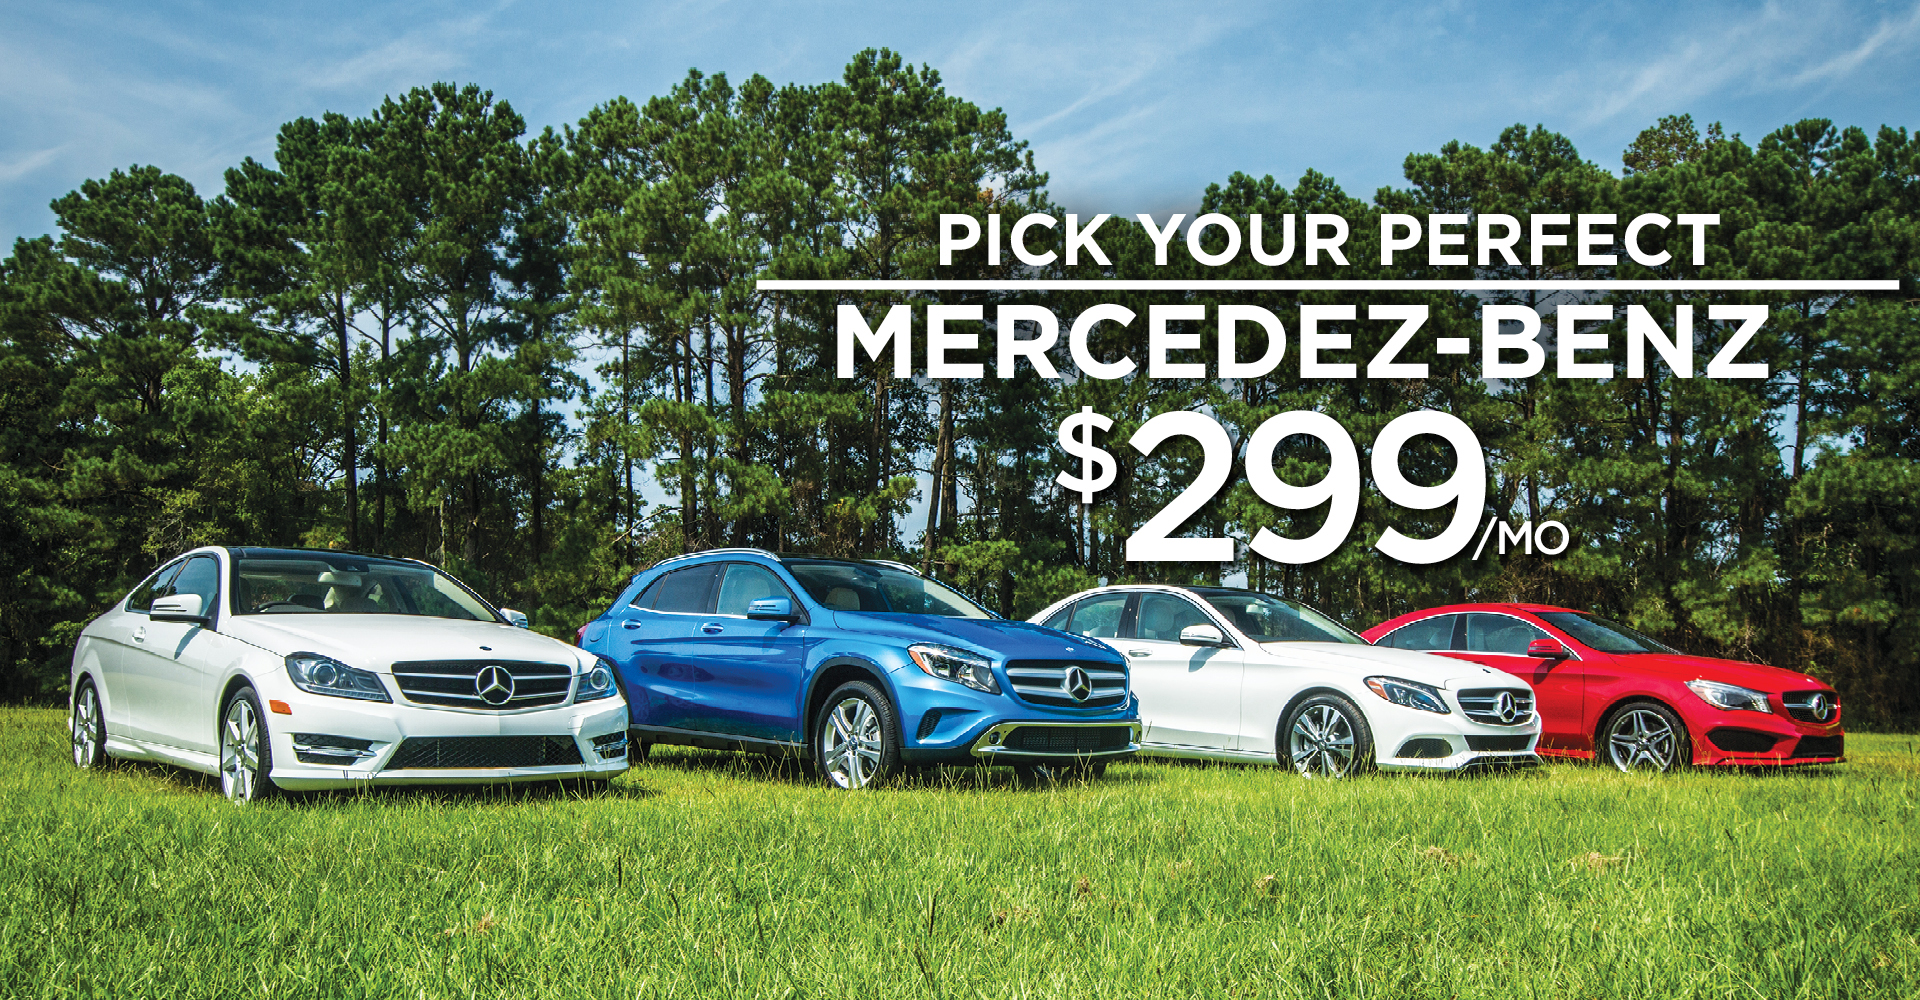 Pick your perfect at baker motor company charleston sc for Baker mercedes benz charleston sc